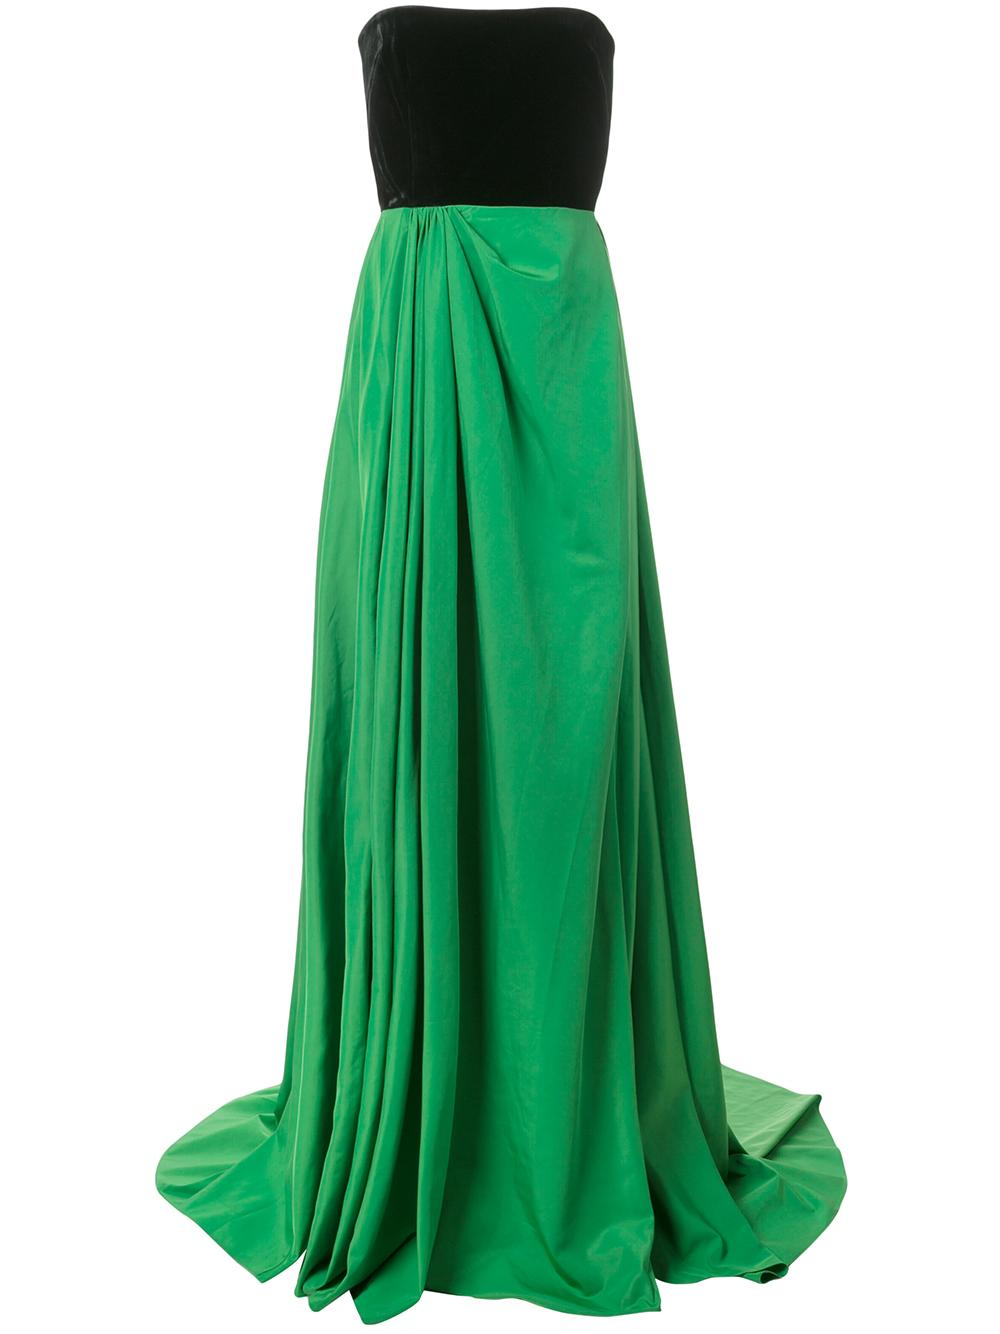 Dalton Velvet And Taffeta Strapless Gown